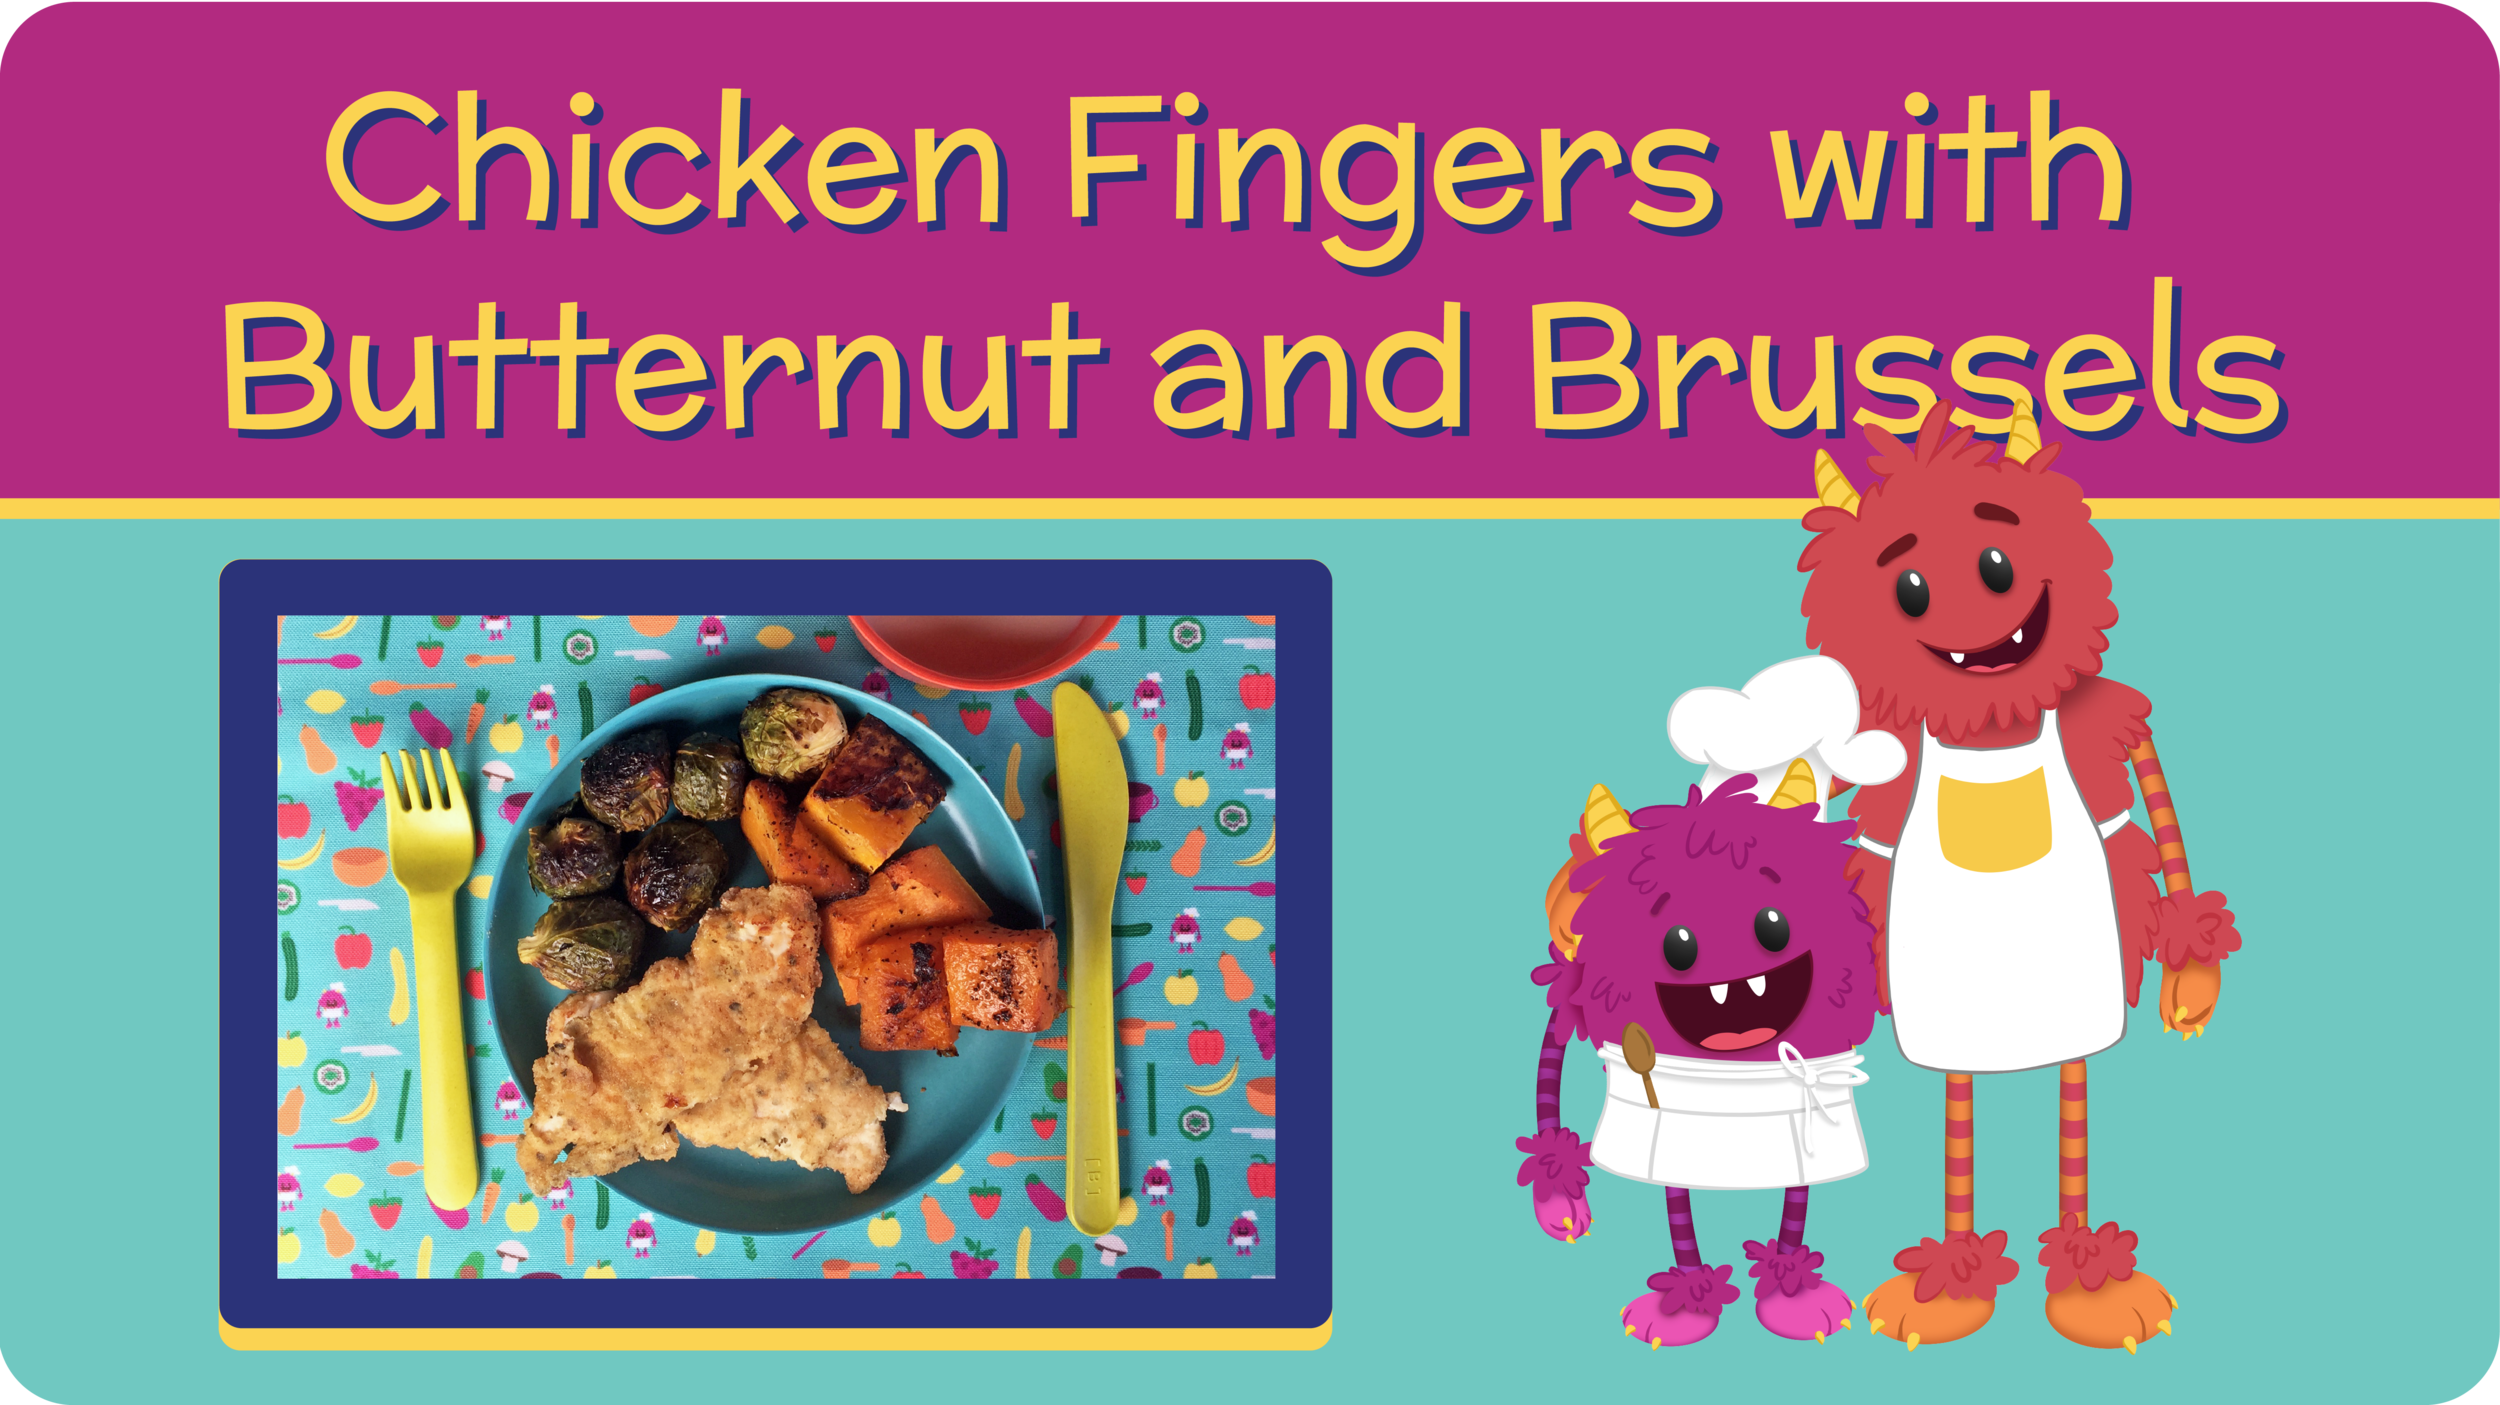 01_ChickenFingersButternutBrussels_Title Page-01.png